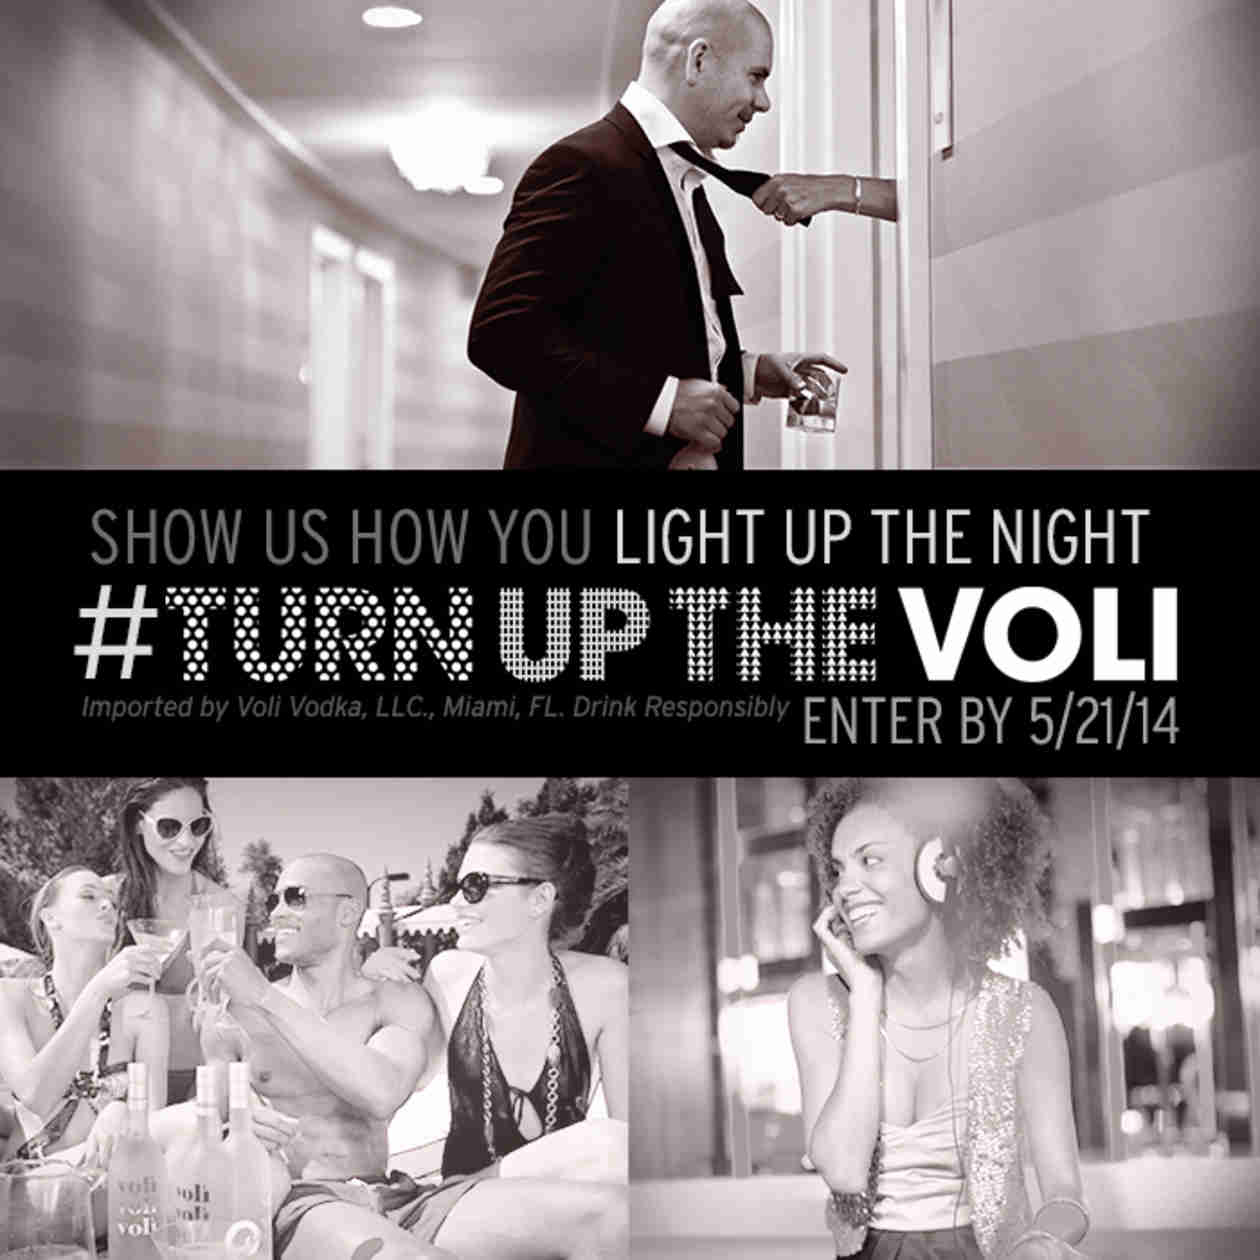 Want to Meet Pitbull? Enter For a Chance to Meet the Rapper!